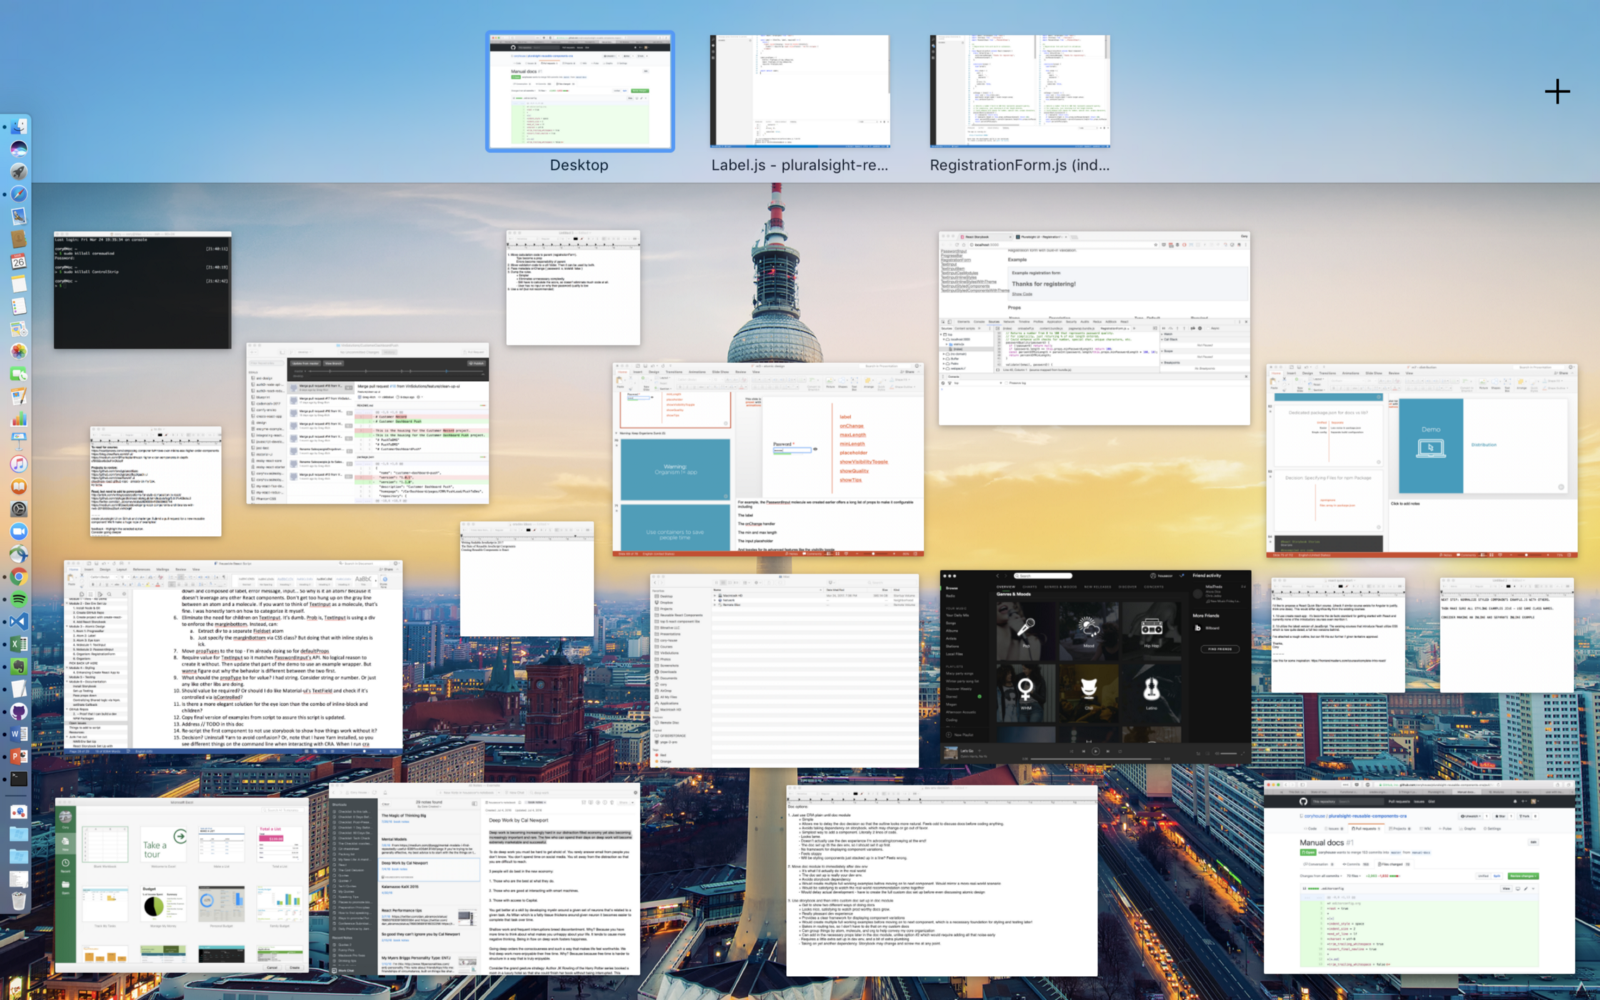 Why I Stopped Using Multiple Monitors - By